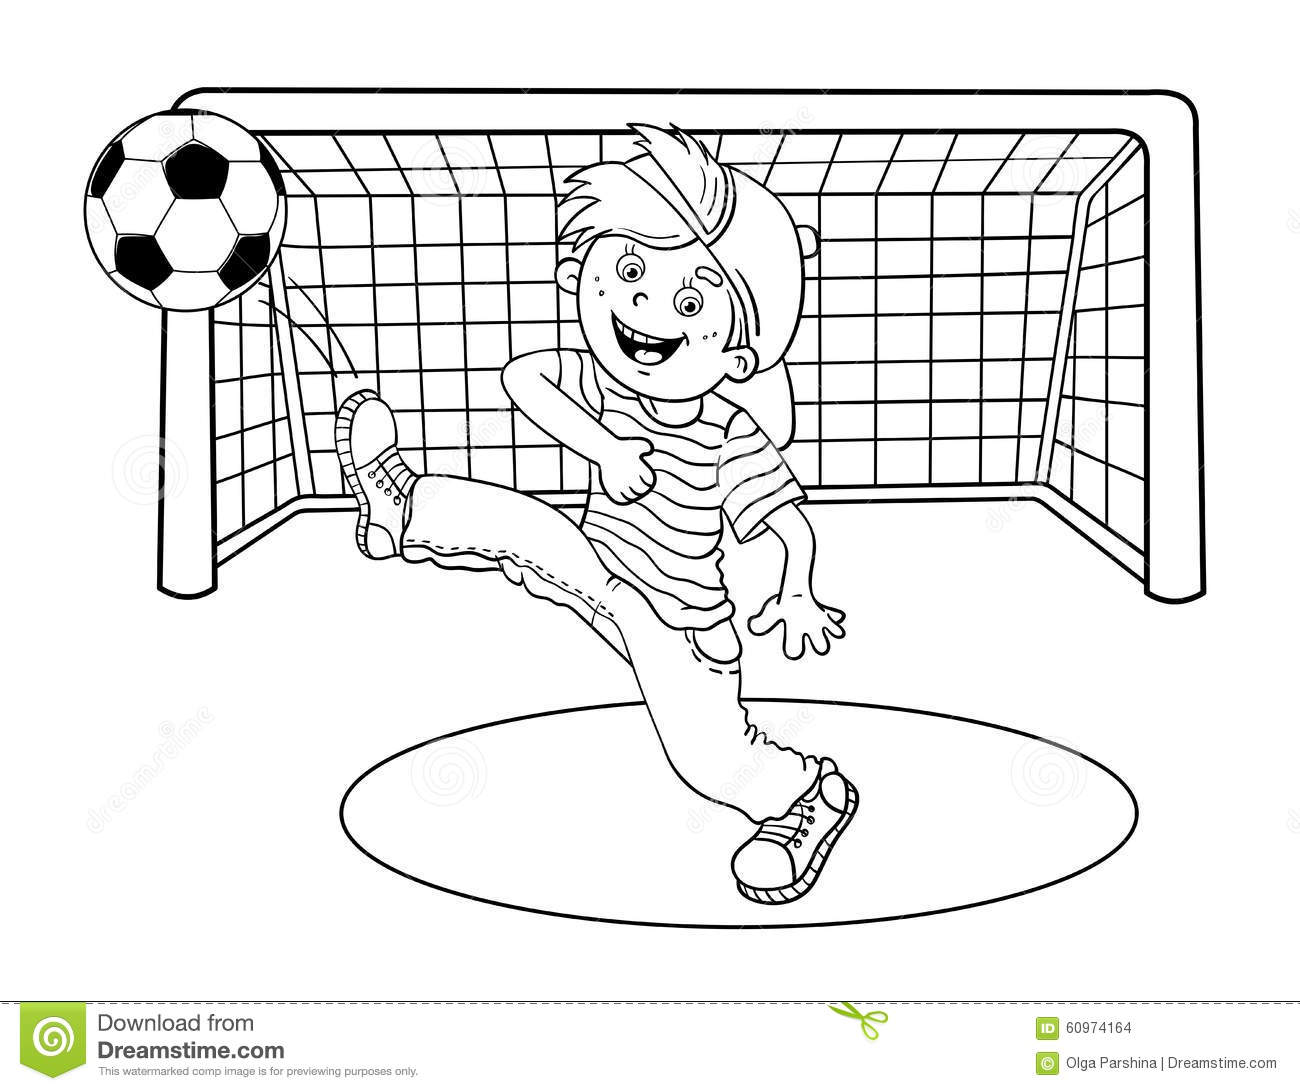 Coloring Page Outline Of A Boy Kicking Soccer Ball Stock Vector